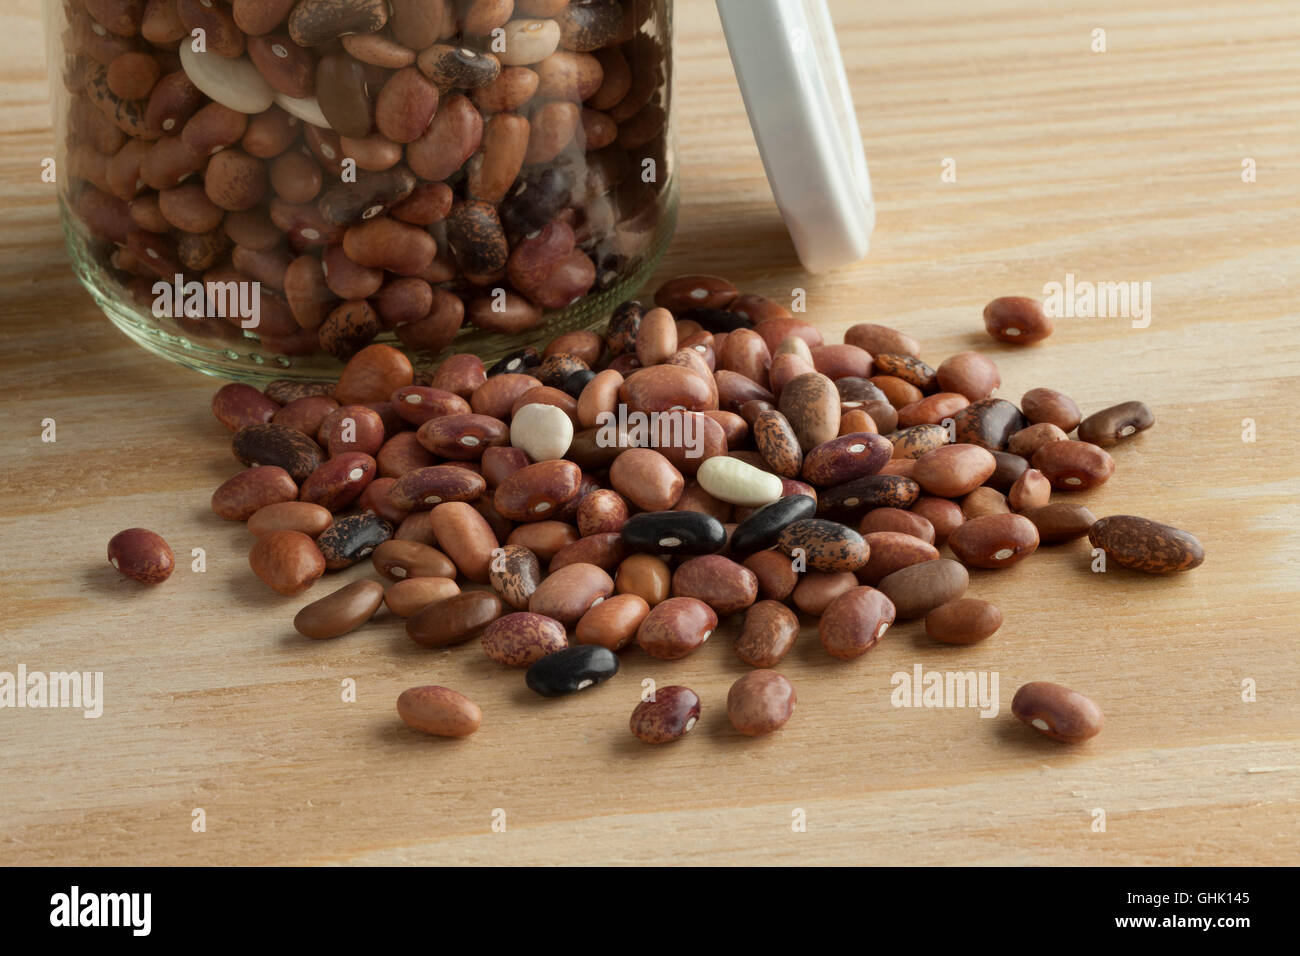 Glass jar with pebble beans close up - Stock Image